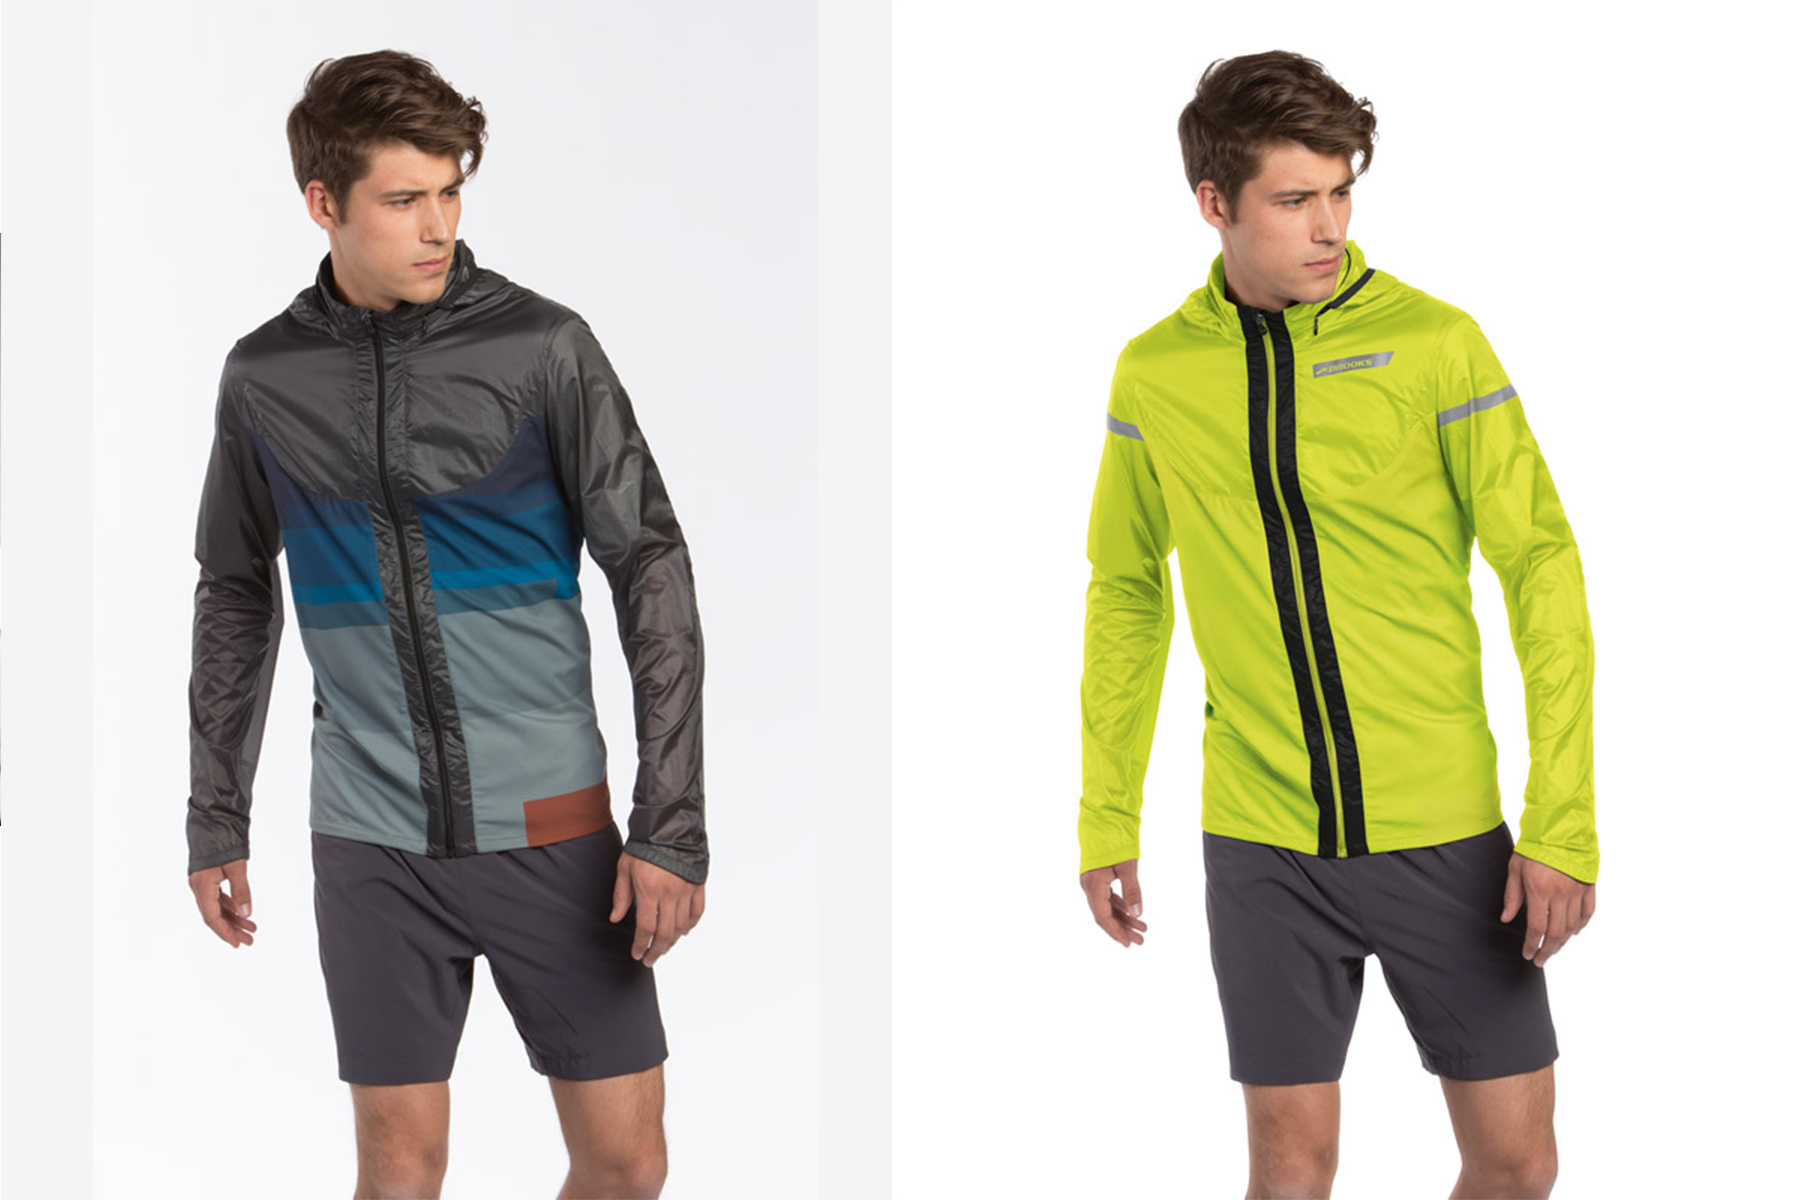 Shoot and rebuild. The image on the left was a prototype jacket to create shape and form - the Jacket on the right was retouched and rebuilt for early consumer release.